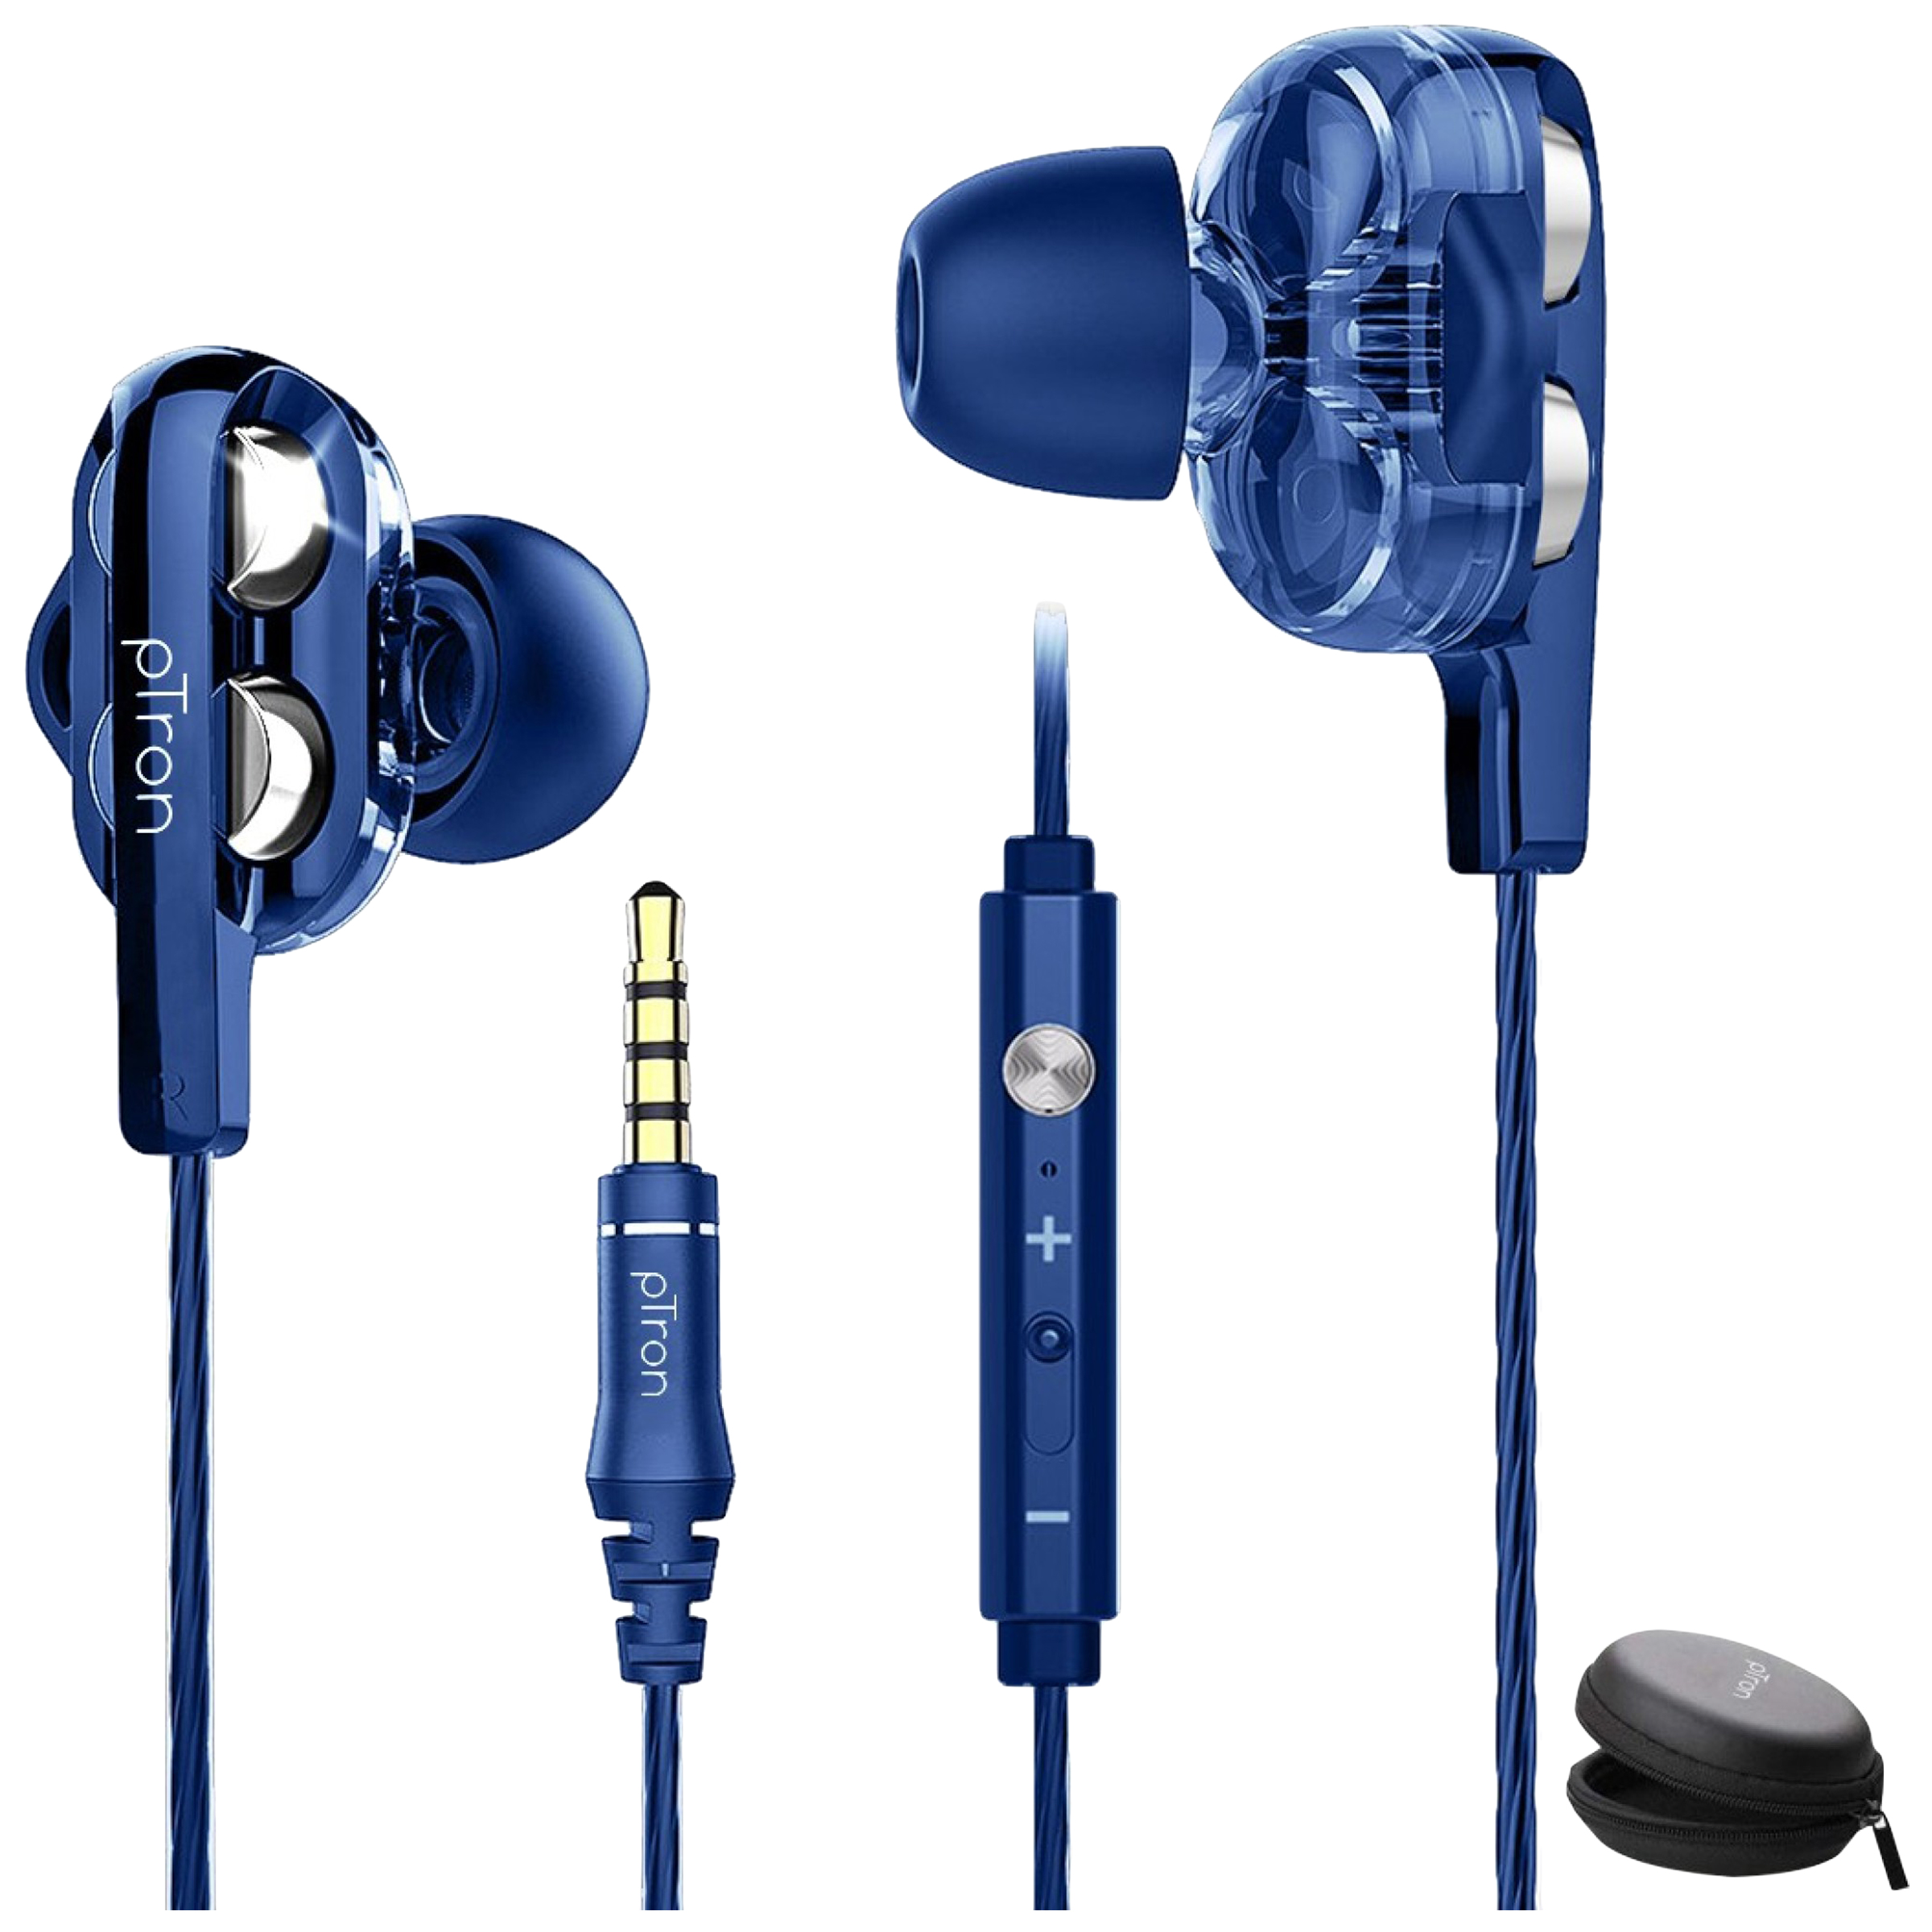 pTron Boom Pro In-Ear Passive Noise Cancellation Wired Earphone with Mic (8mm Dual-Drivers, 140317851, Blue)_1